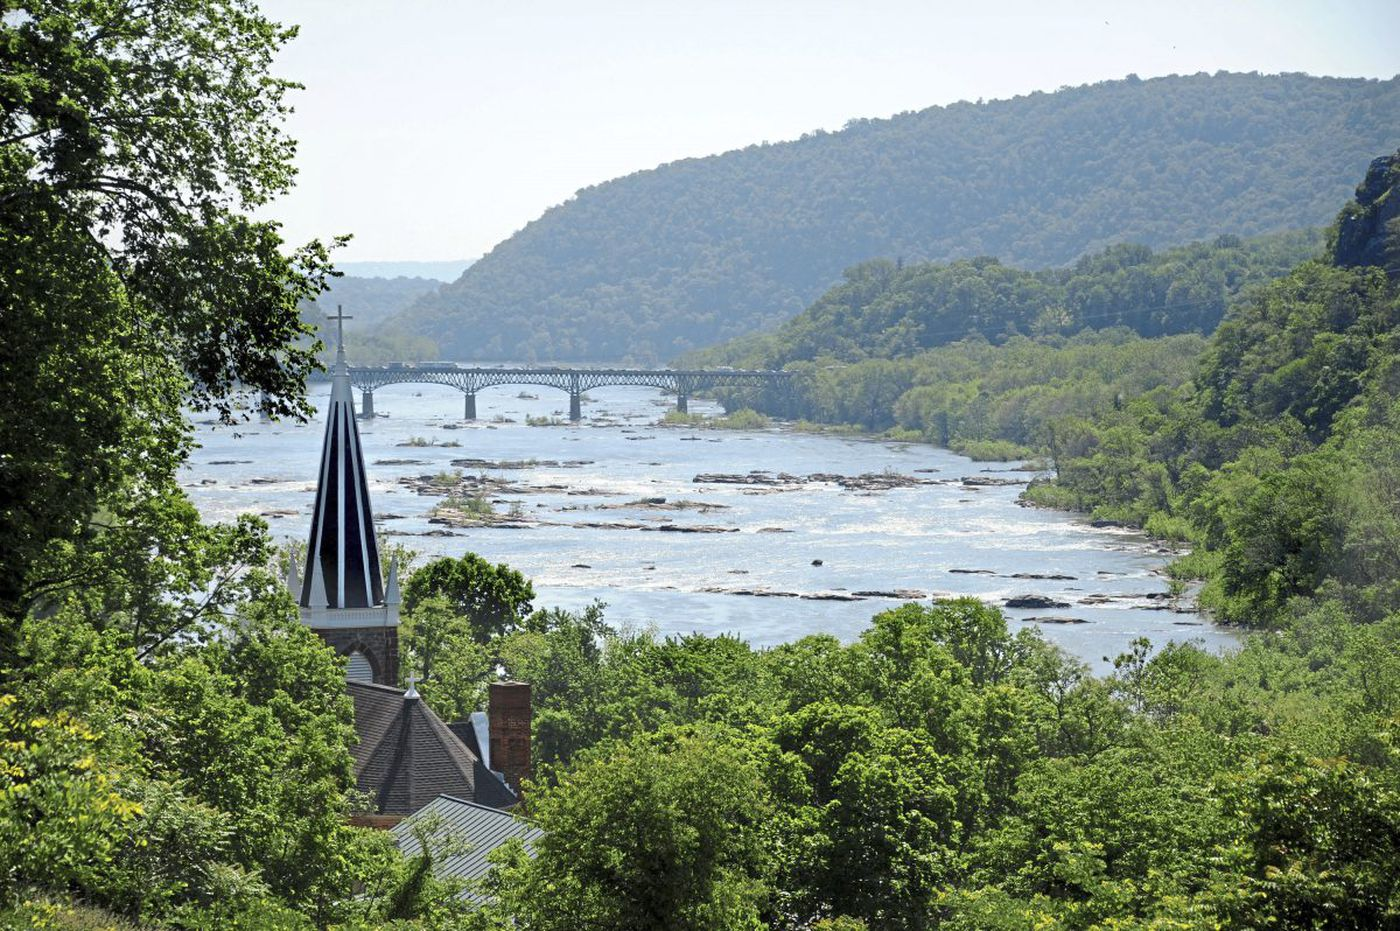 Harpers Ferry: 'Worth a voyage across the Atlantic'